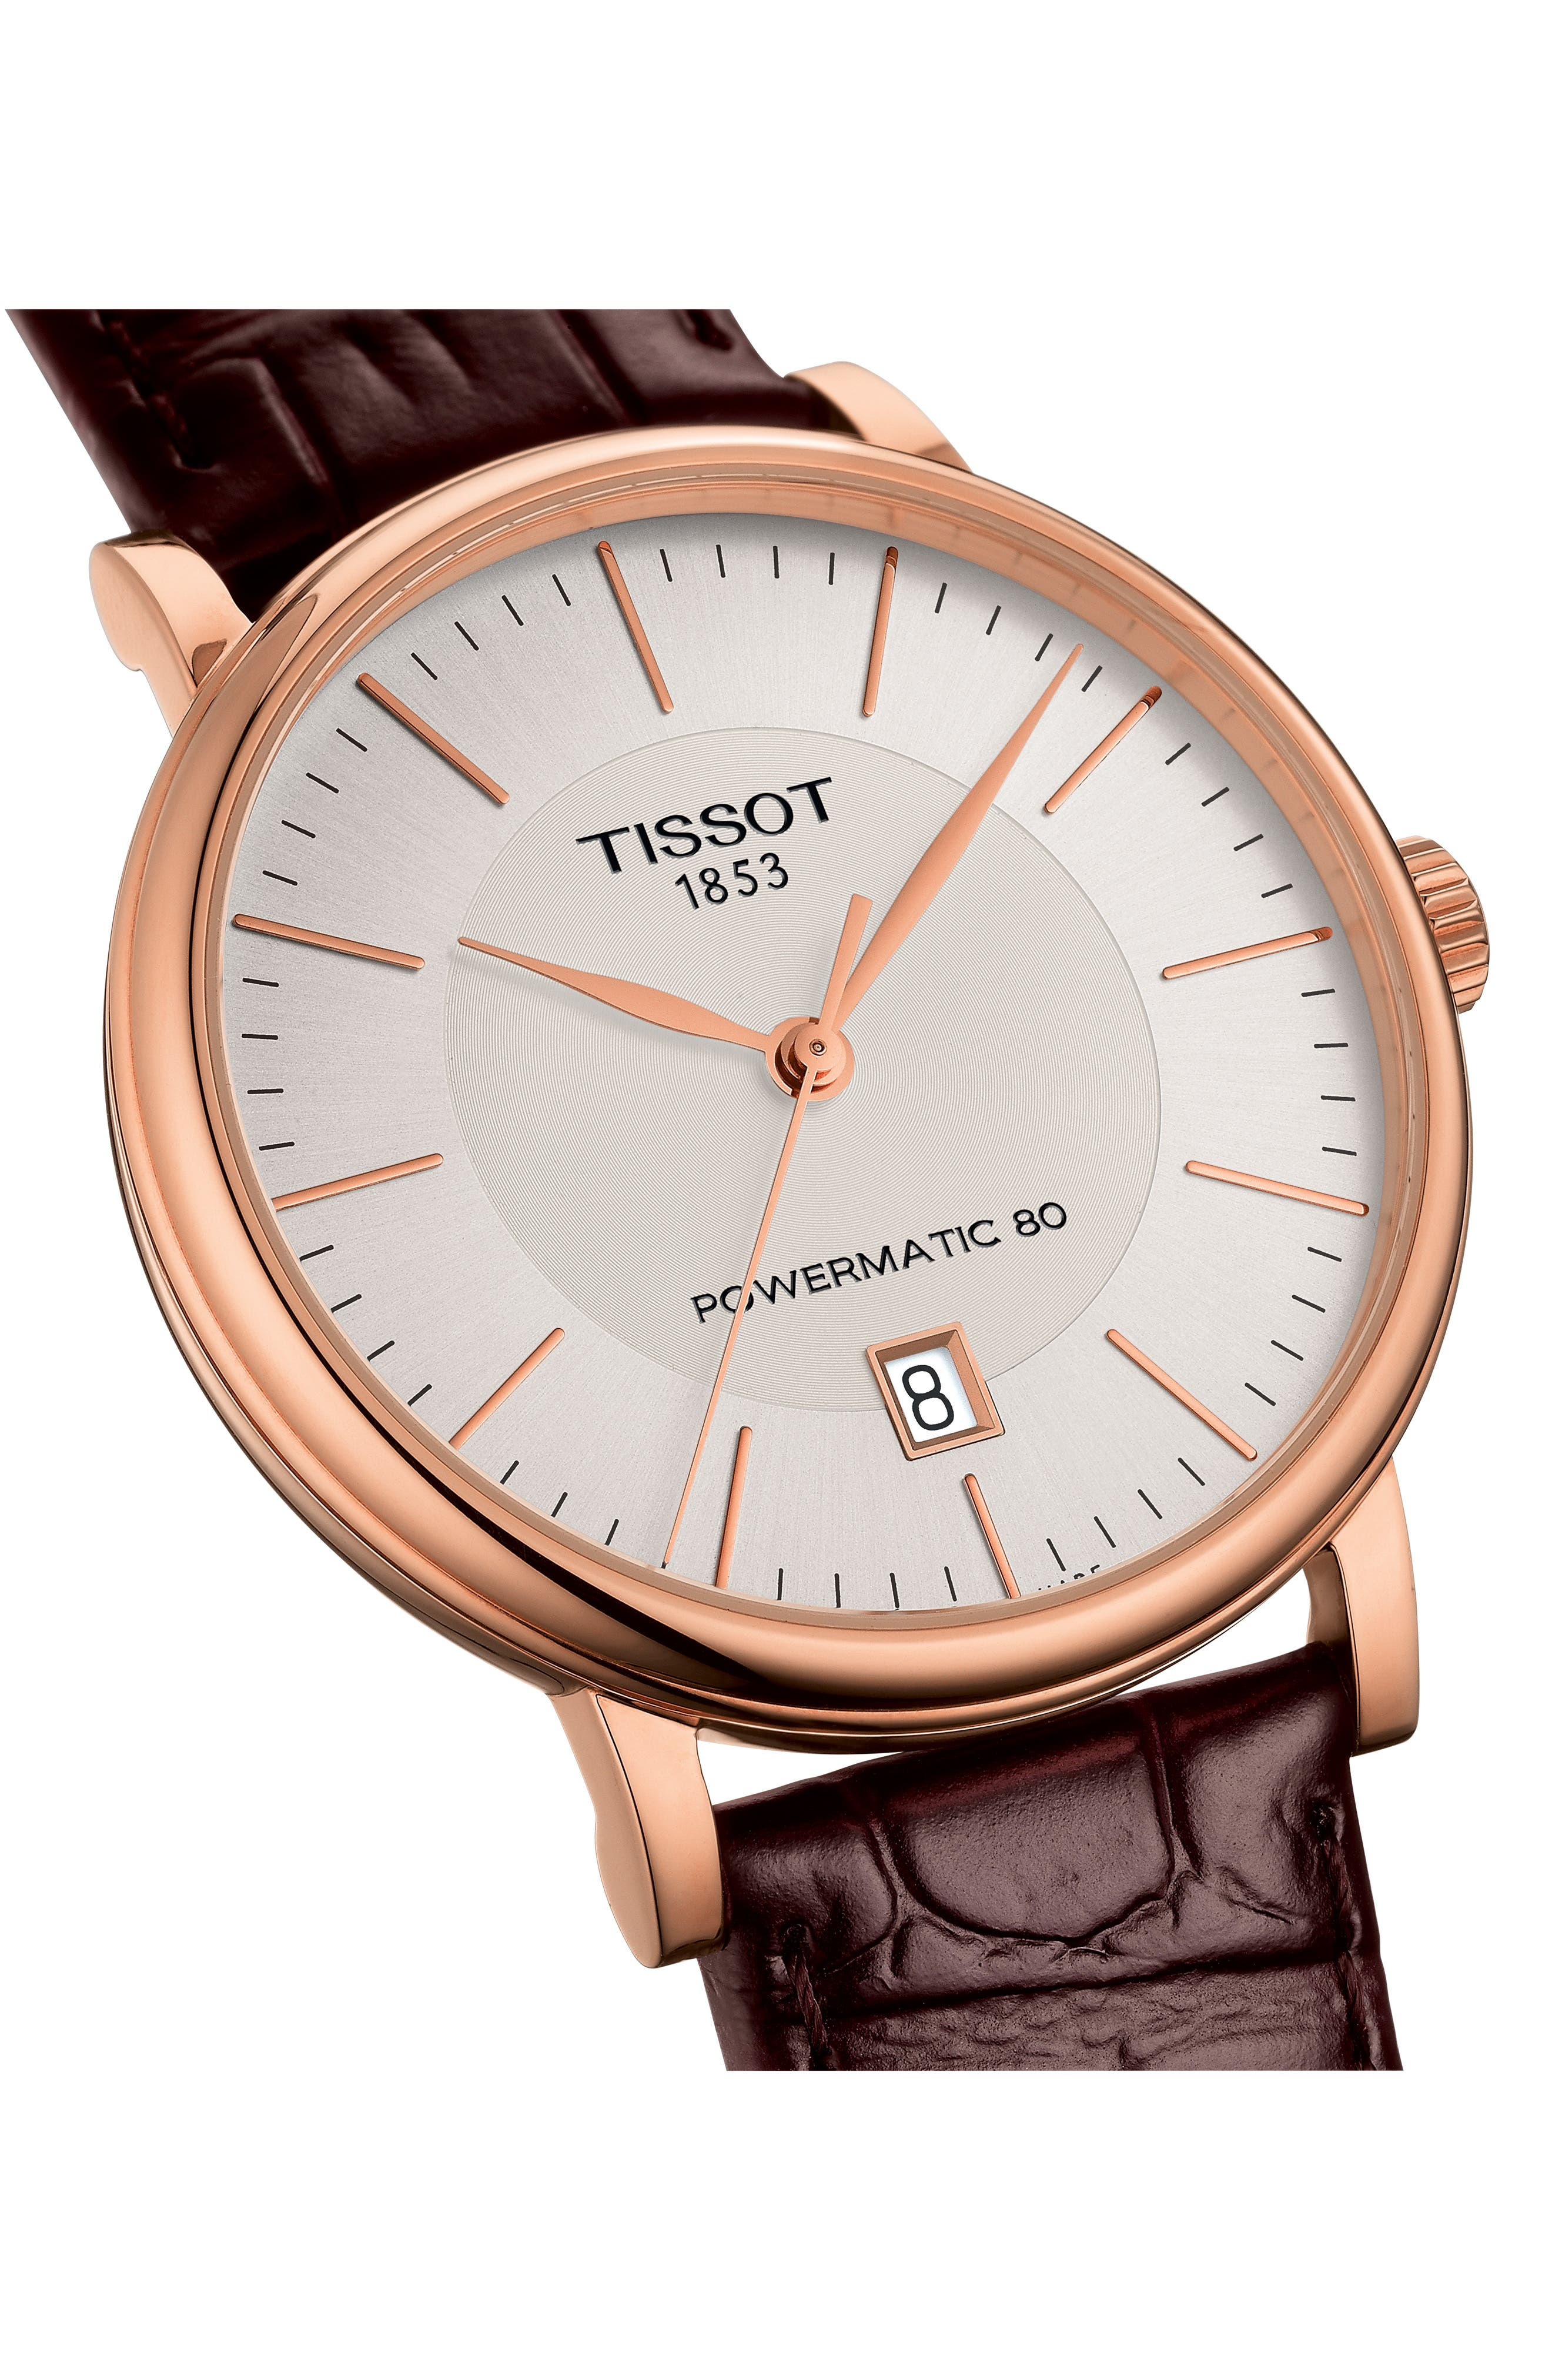 TISSOT, Premium Carson Powermatic 80 Leather Strap Watch, 40mm, Alternate thumbnail 3, color, BROWN/ SILVER/ ROSE GOLD